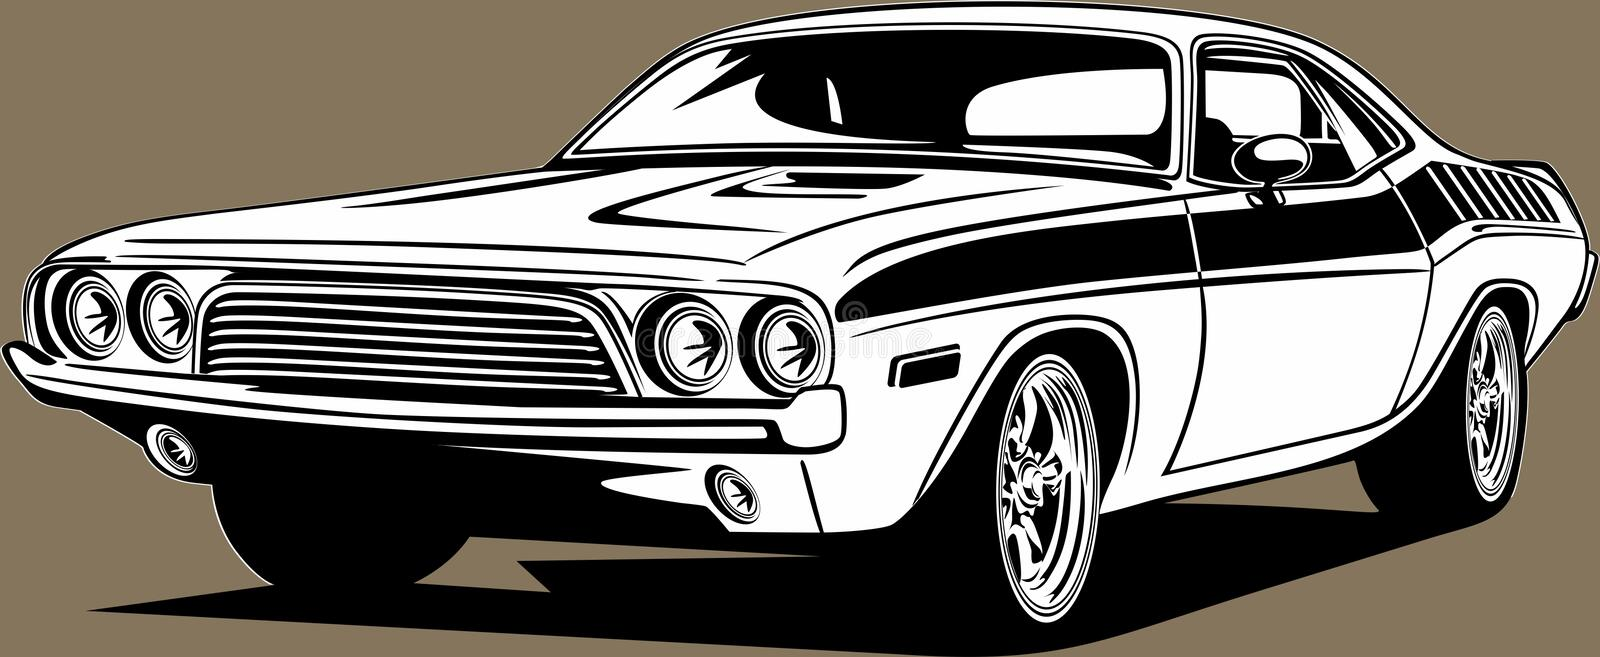 car dodge stock illustrations 184 car dodge stock illustrations vectors clipart dreamstime car dodge stock illustrations 184 car